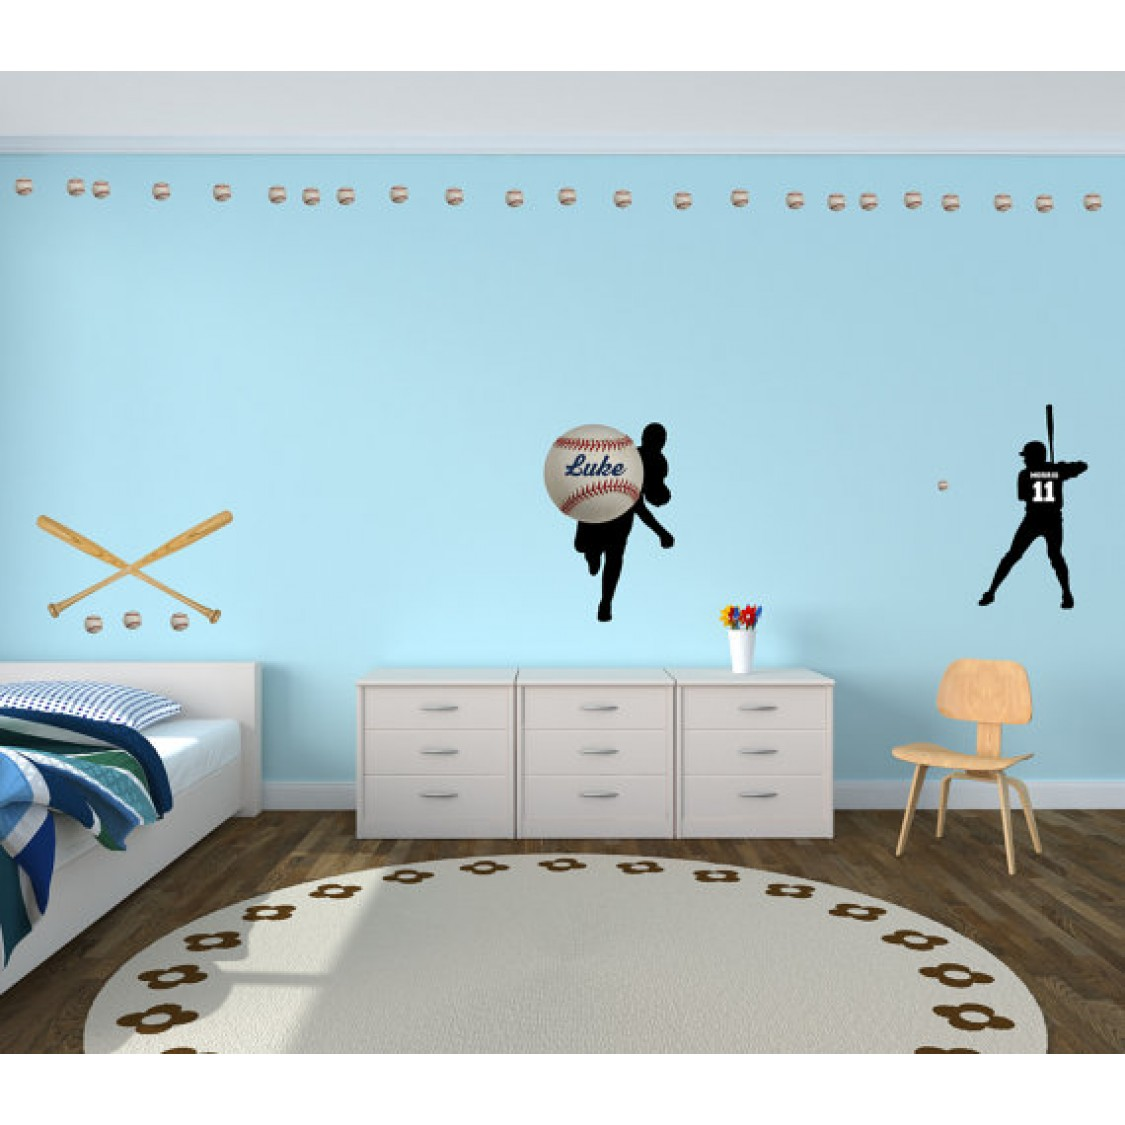 Custom baseball and custom name wall decals for boys rooms custom baseball and nursery wall decals names for boys bedrooms amipublicfo Choice Image